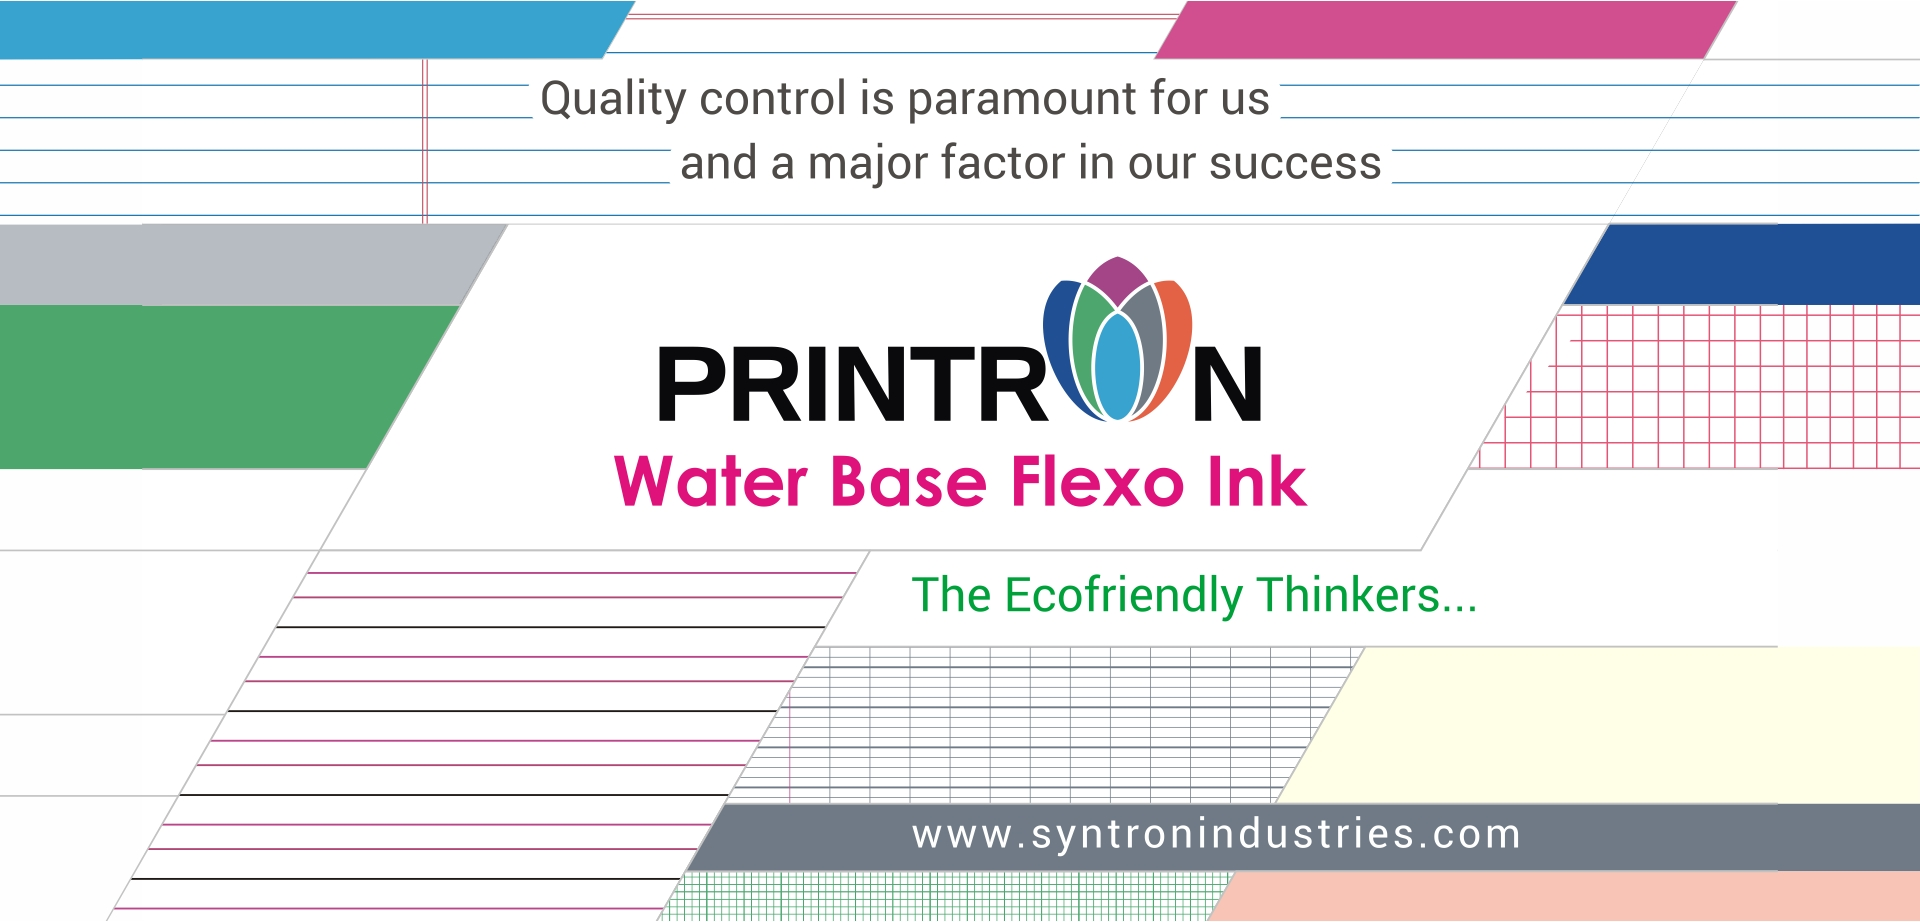 Syntron Industries - Water Base Flexo Ink